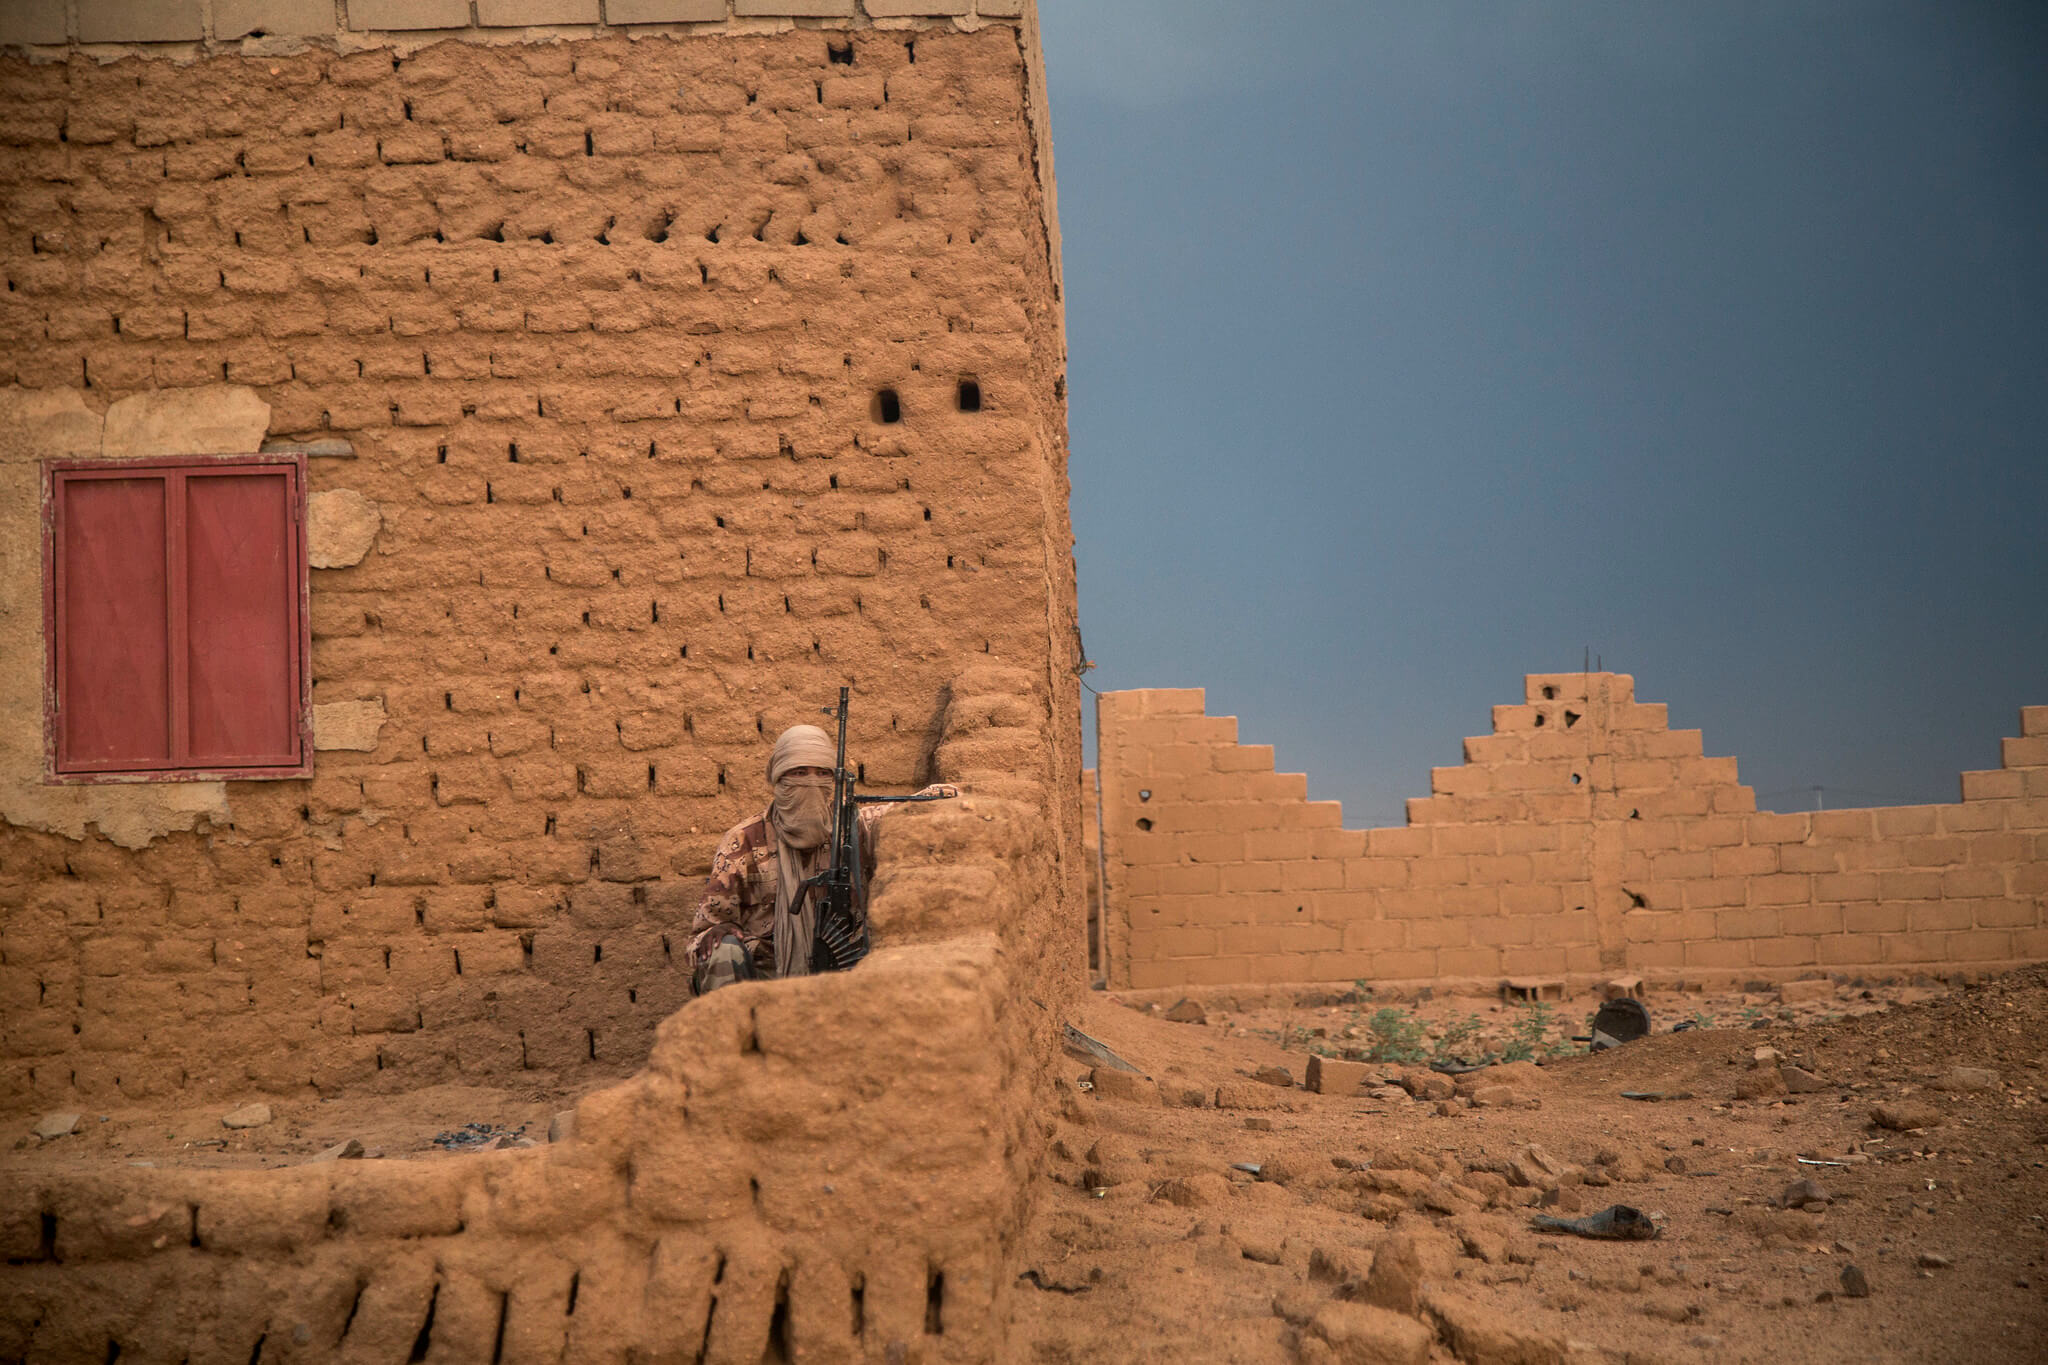 Street Scene from Kidal, Northern Mali 2015 - United Nations Photo